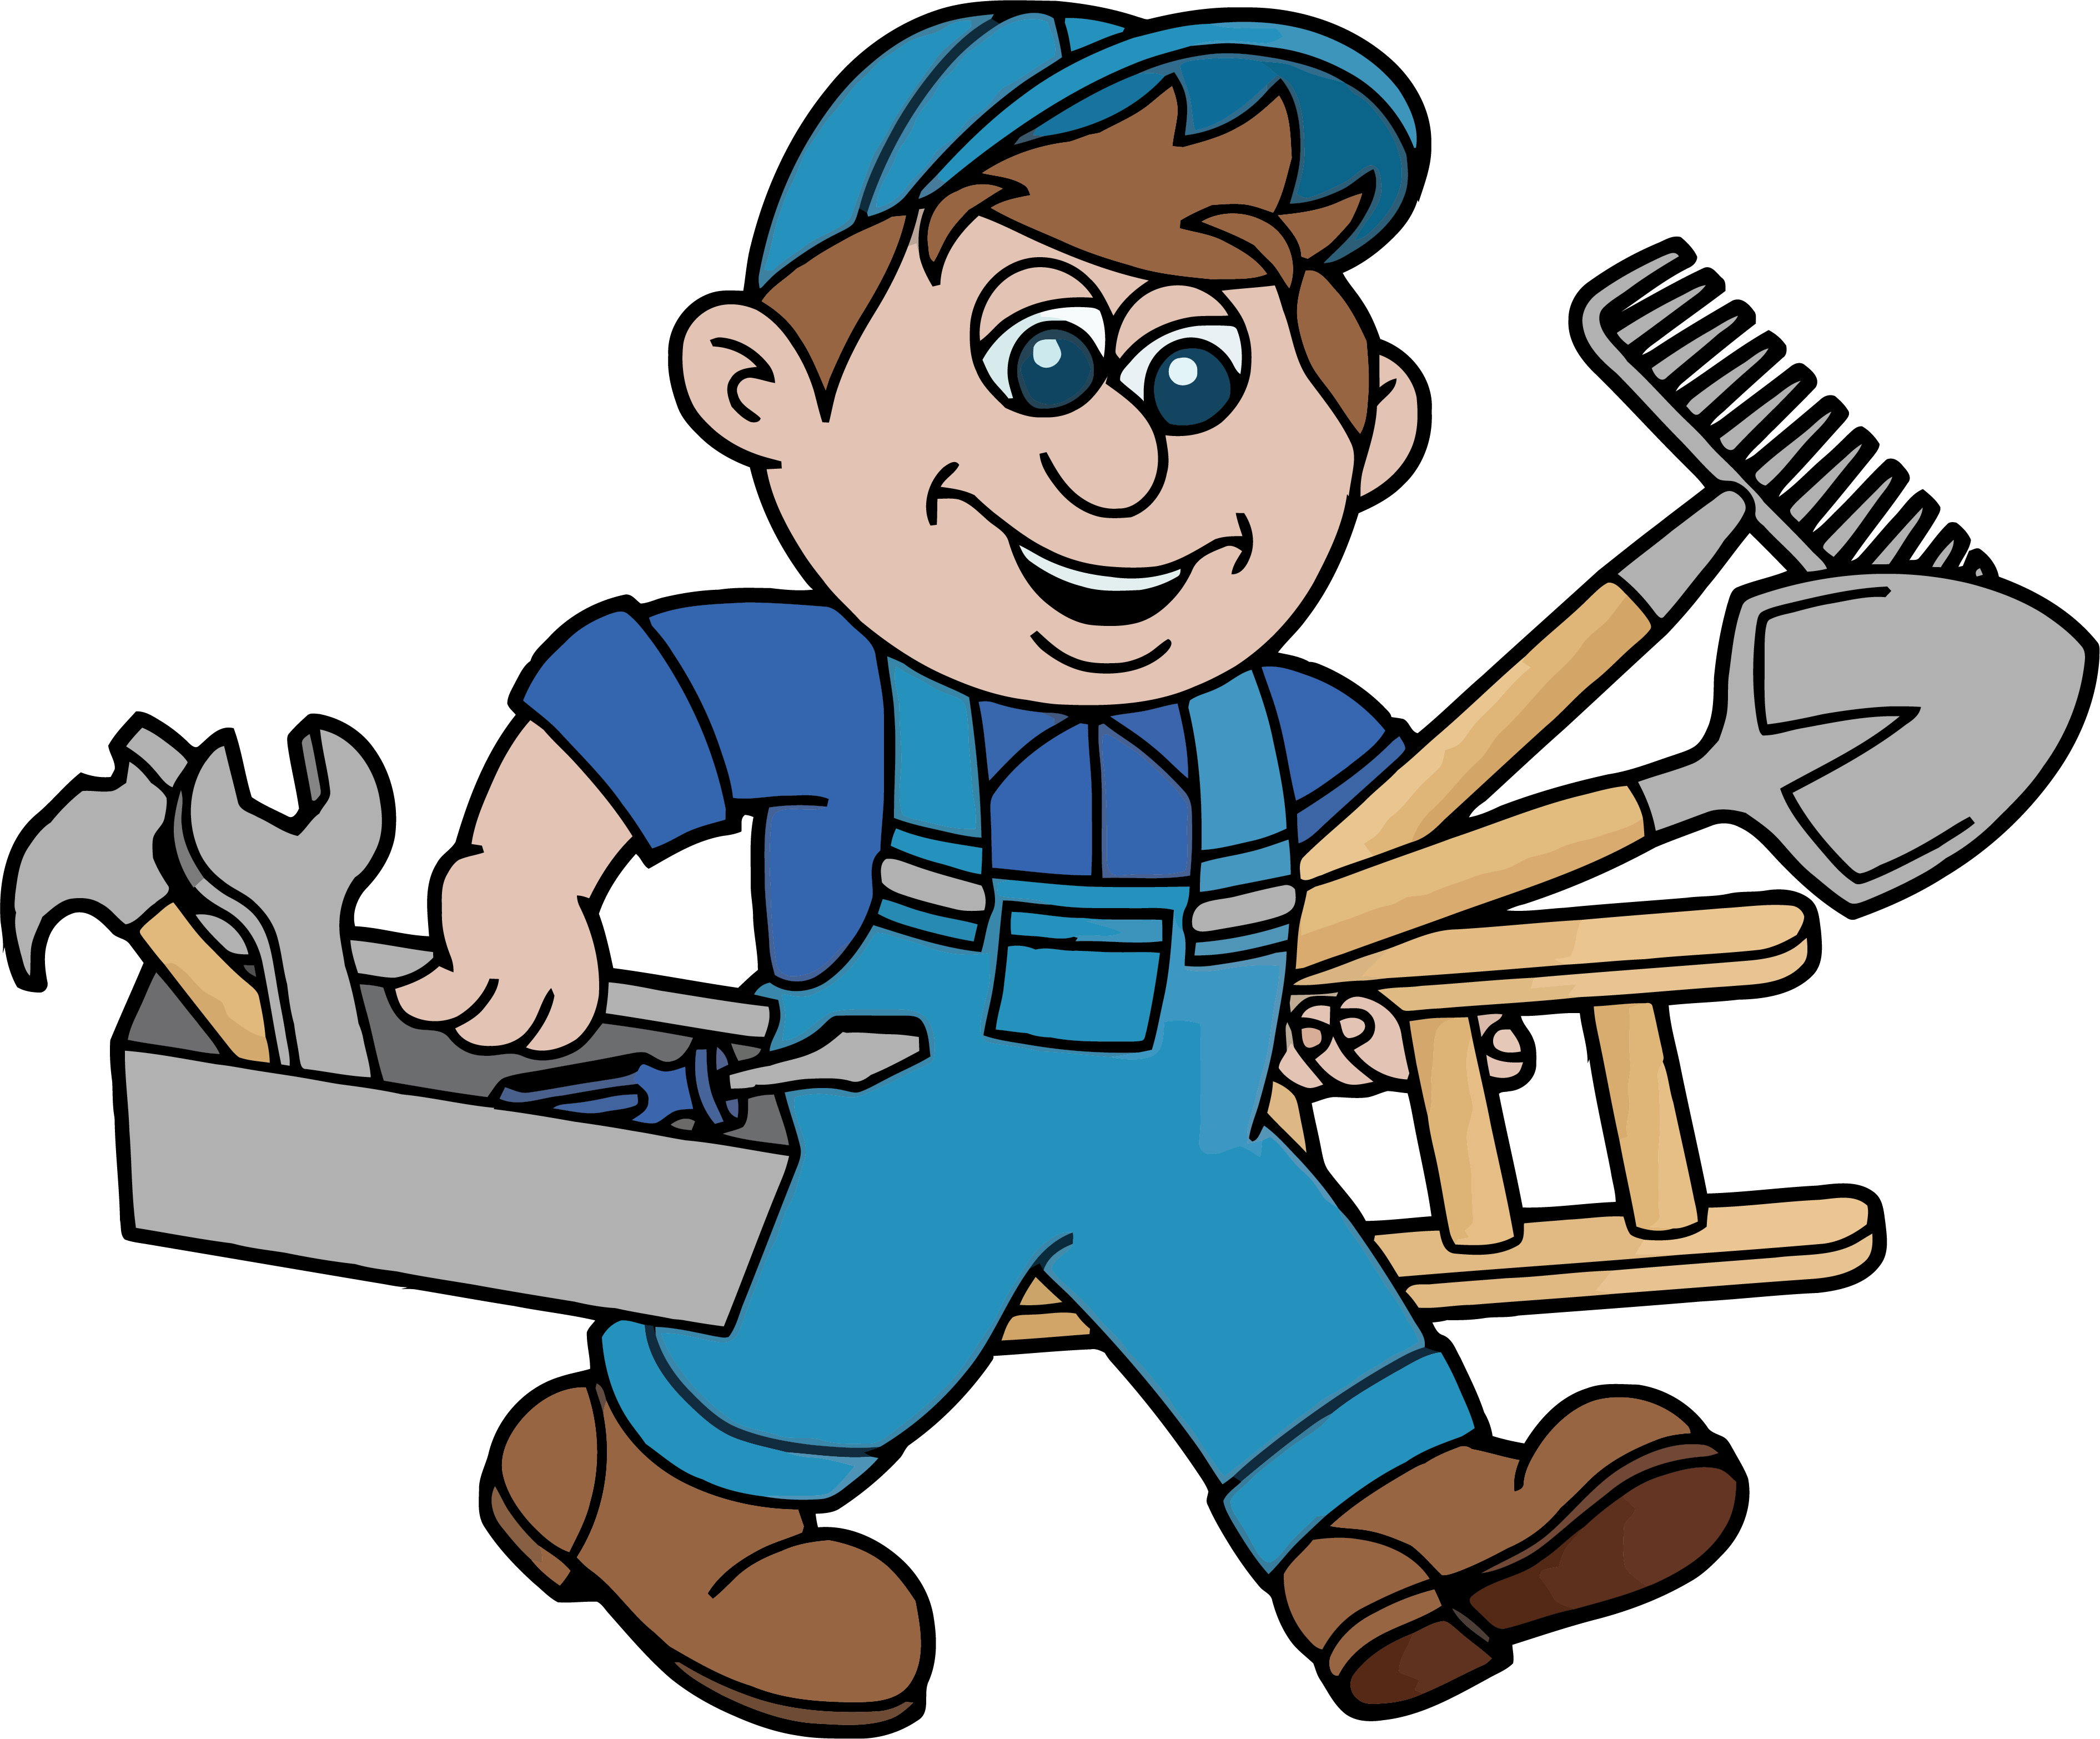 Glasgow services advertising home. Handyman clipart